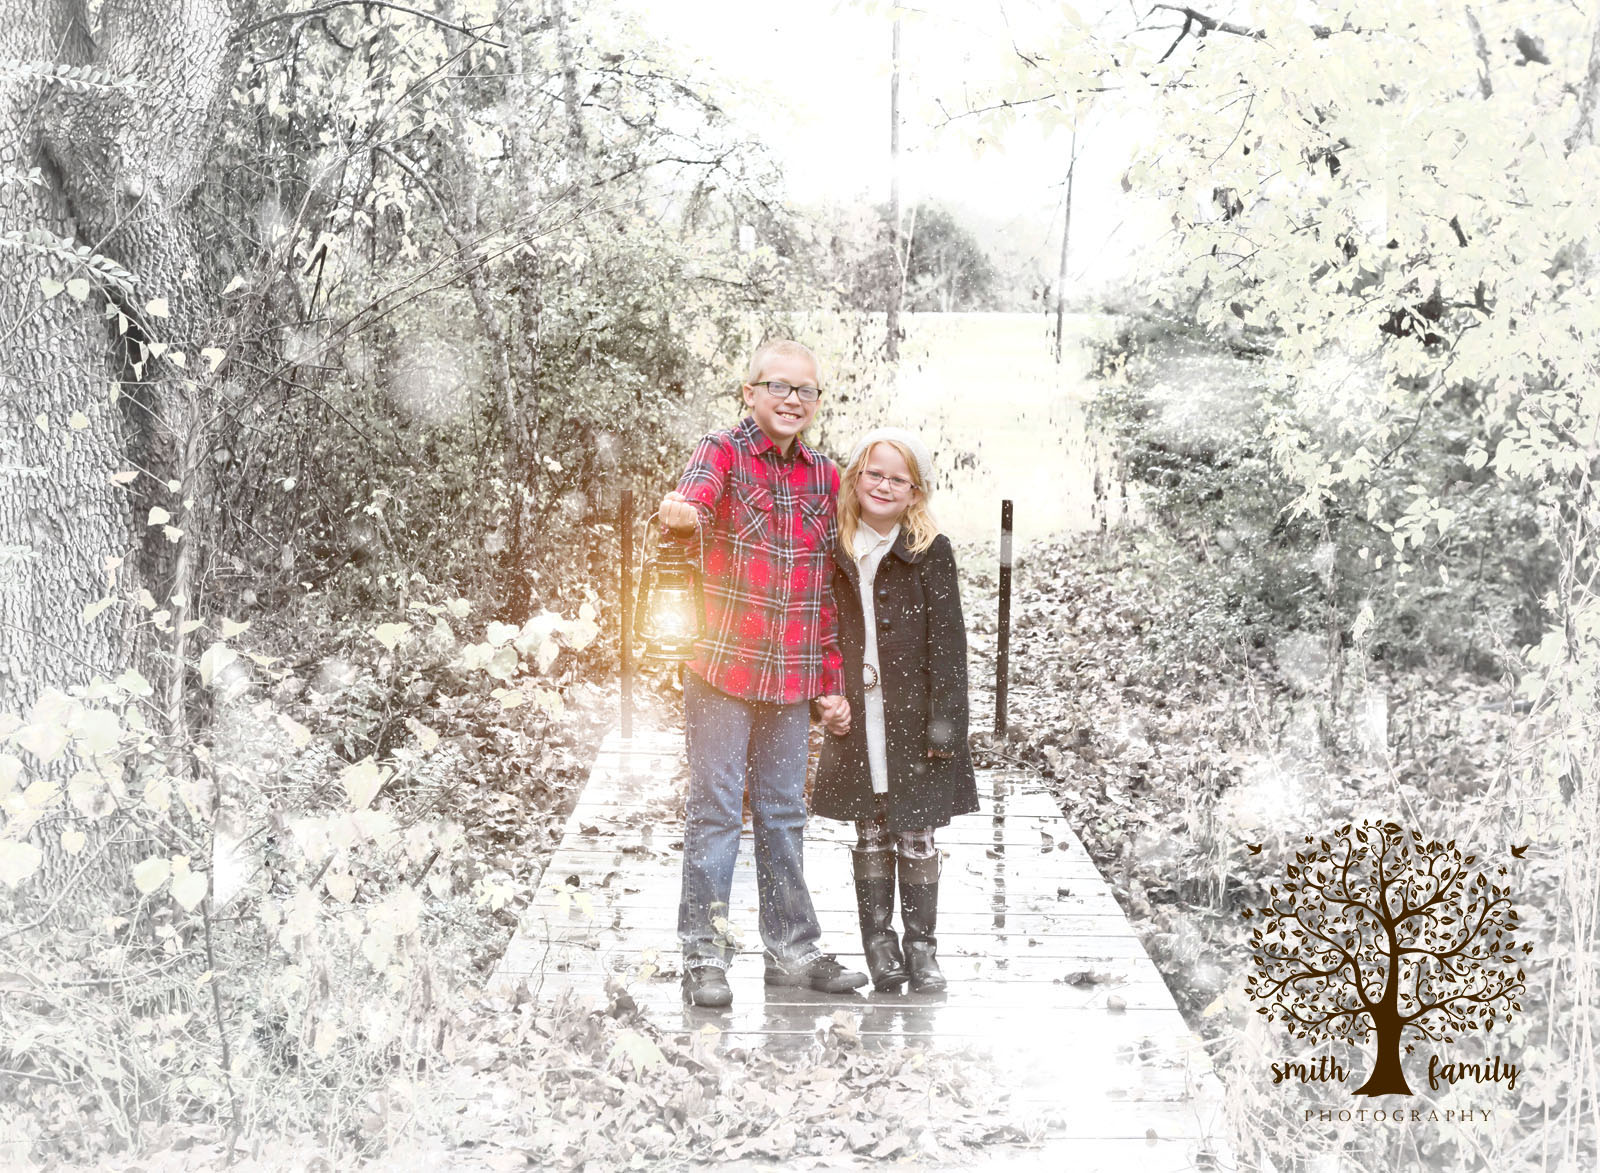 siblings_winter_wonderland_smith_family_photography